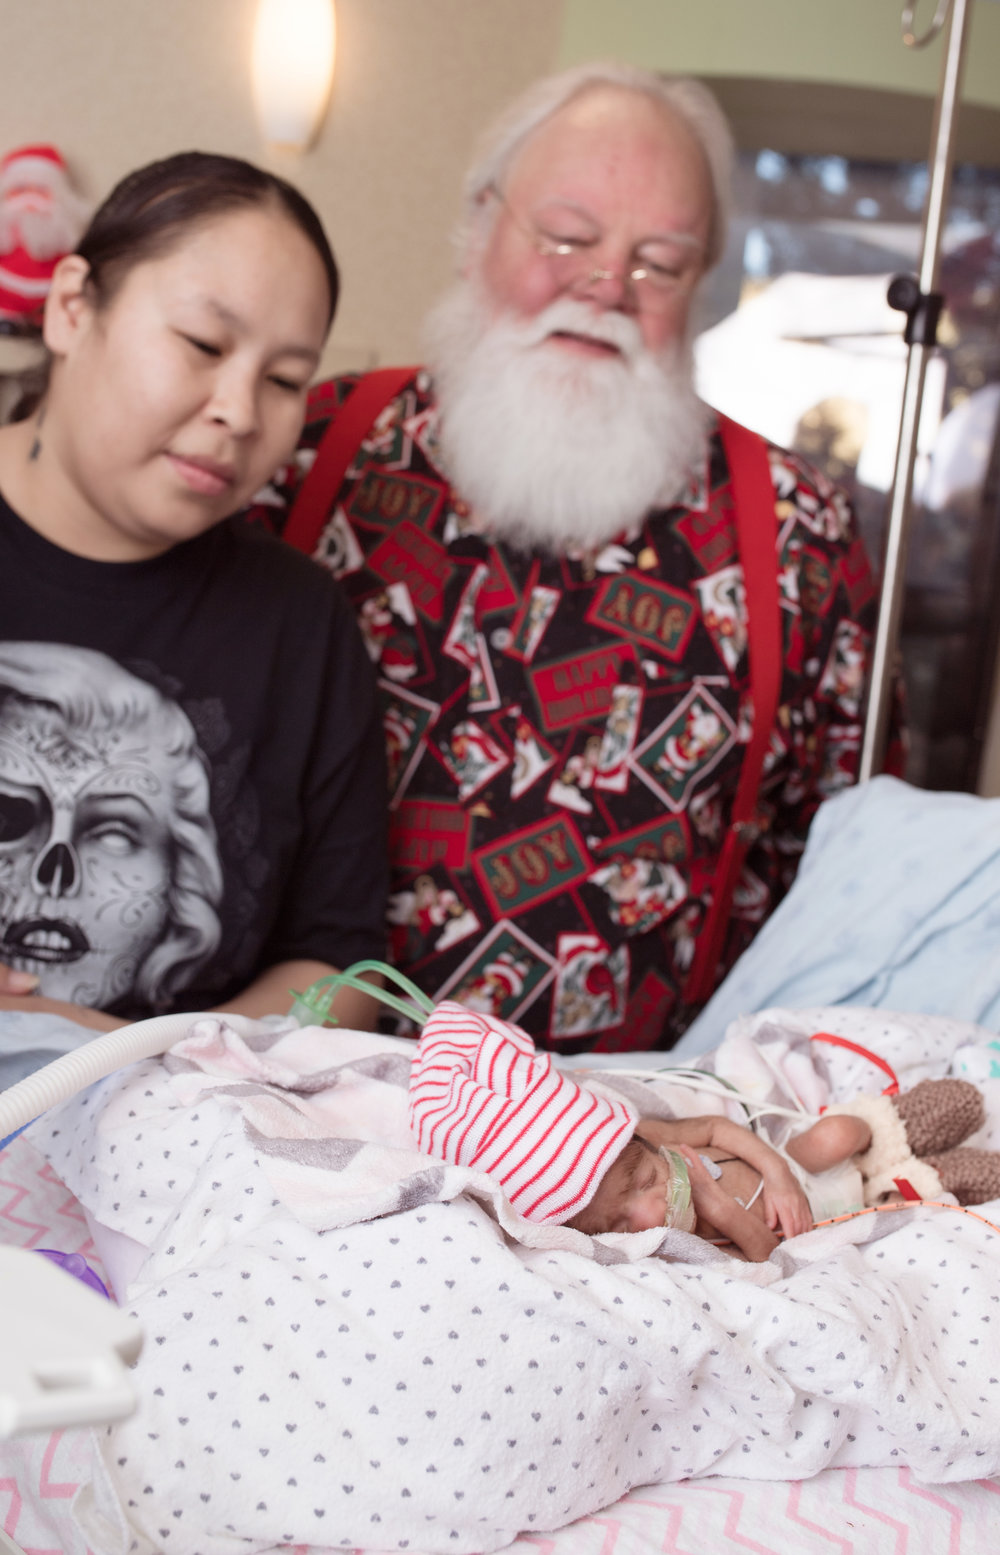 Baby and Santa in NICU